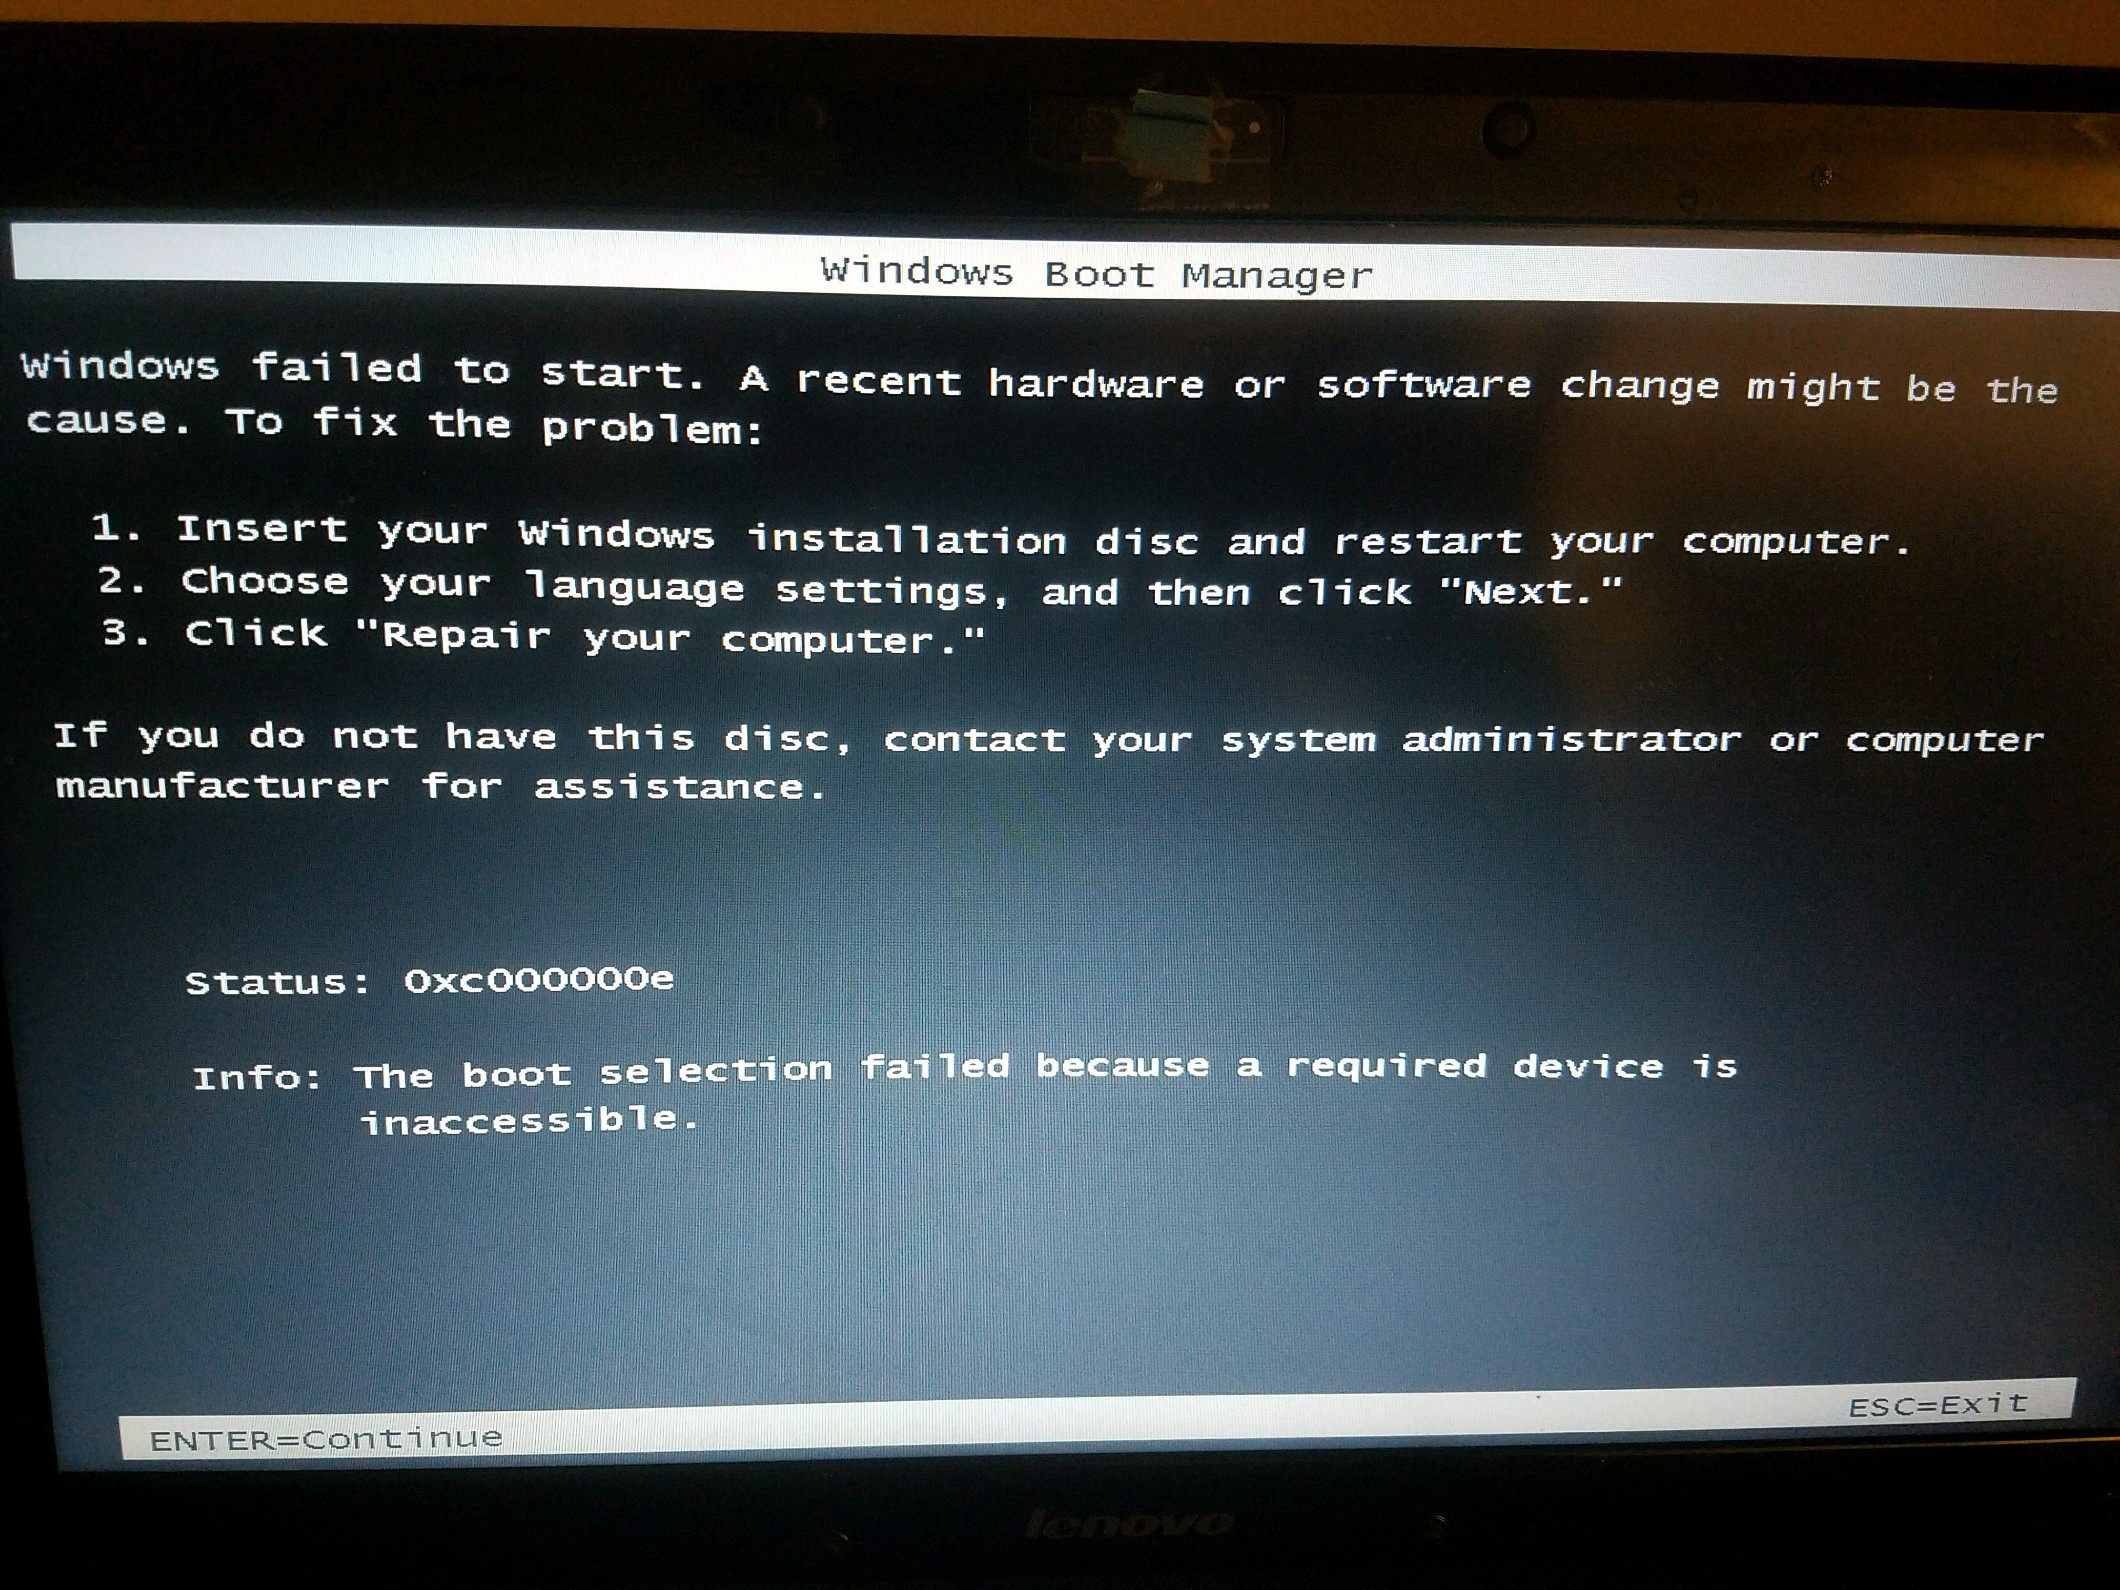 Windows 7 doesn't boot up, switches to black